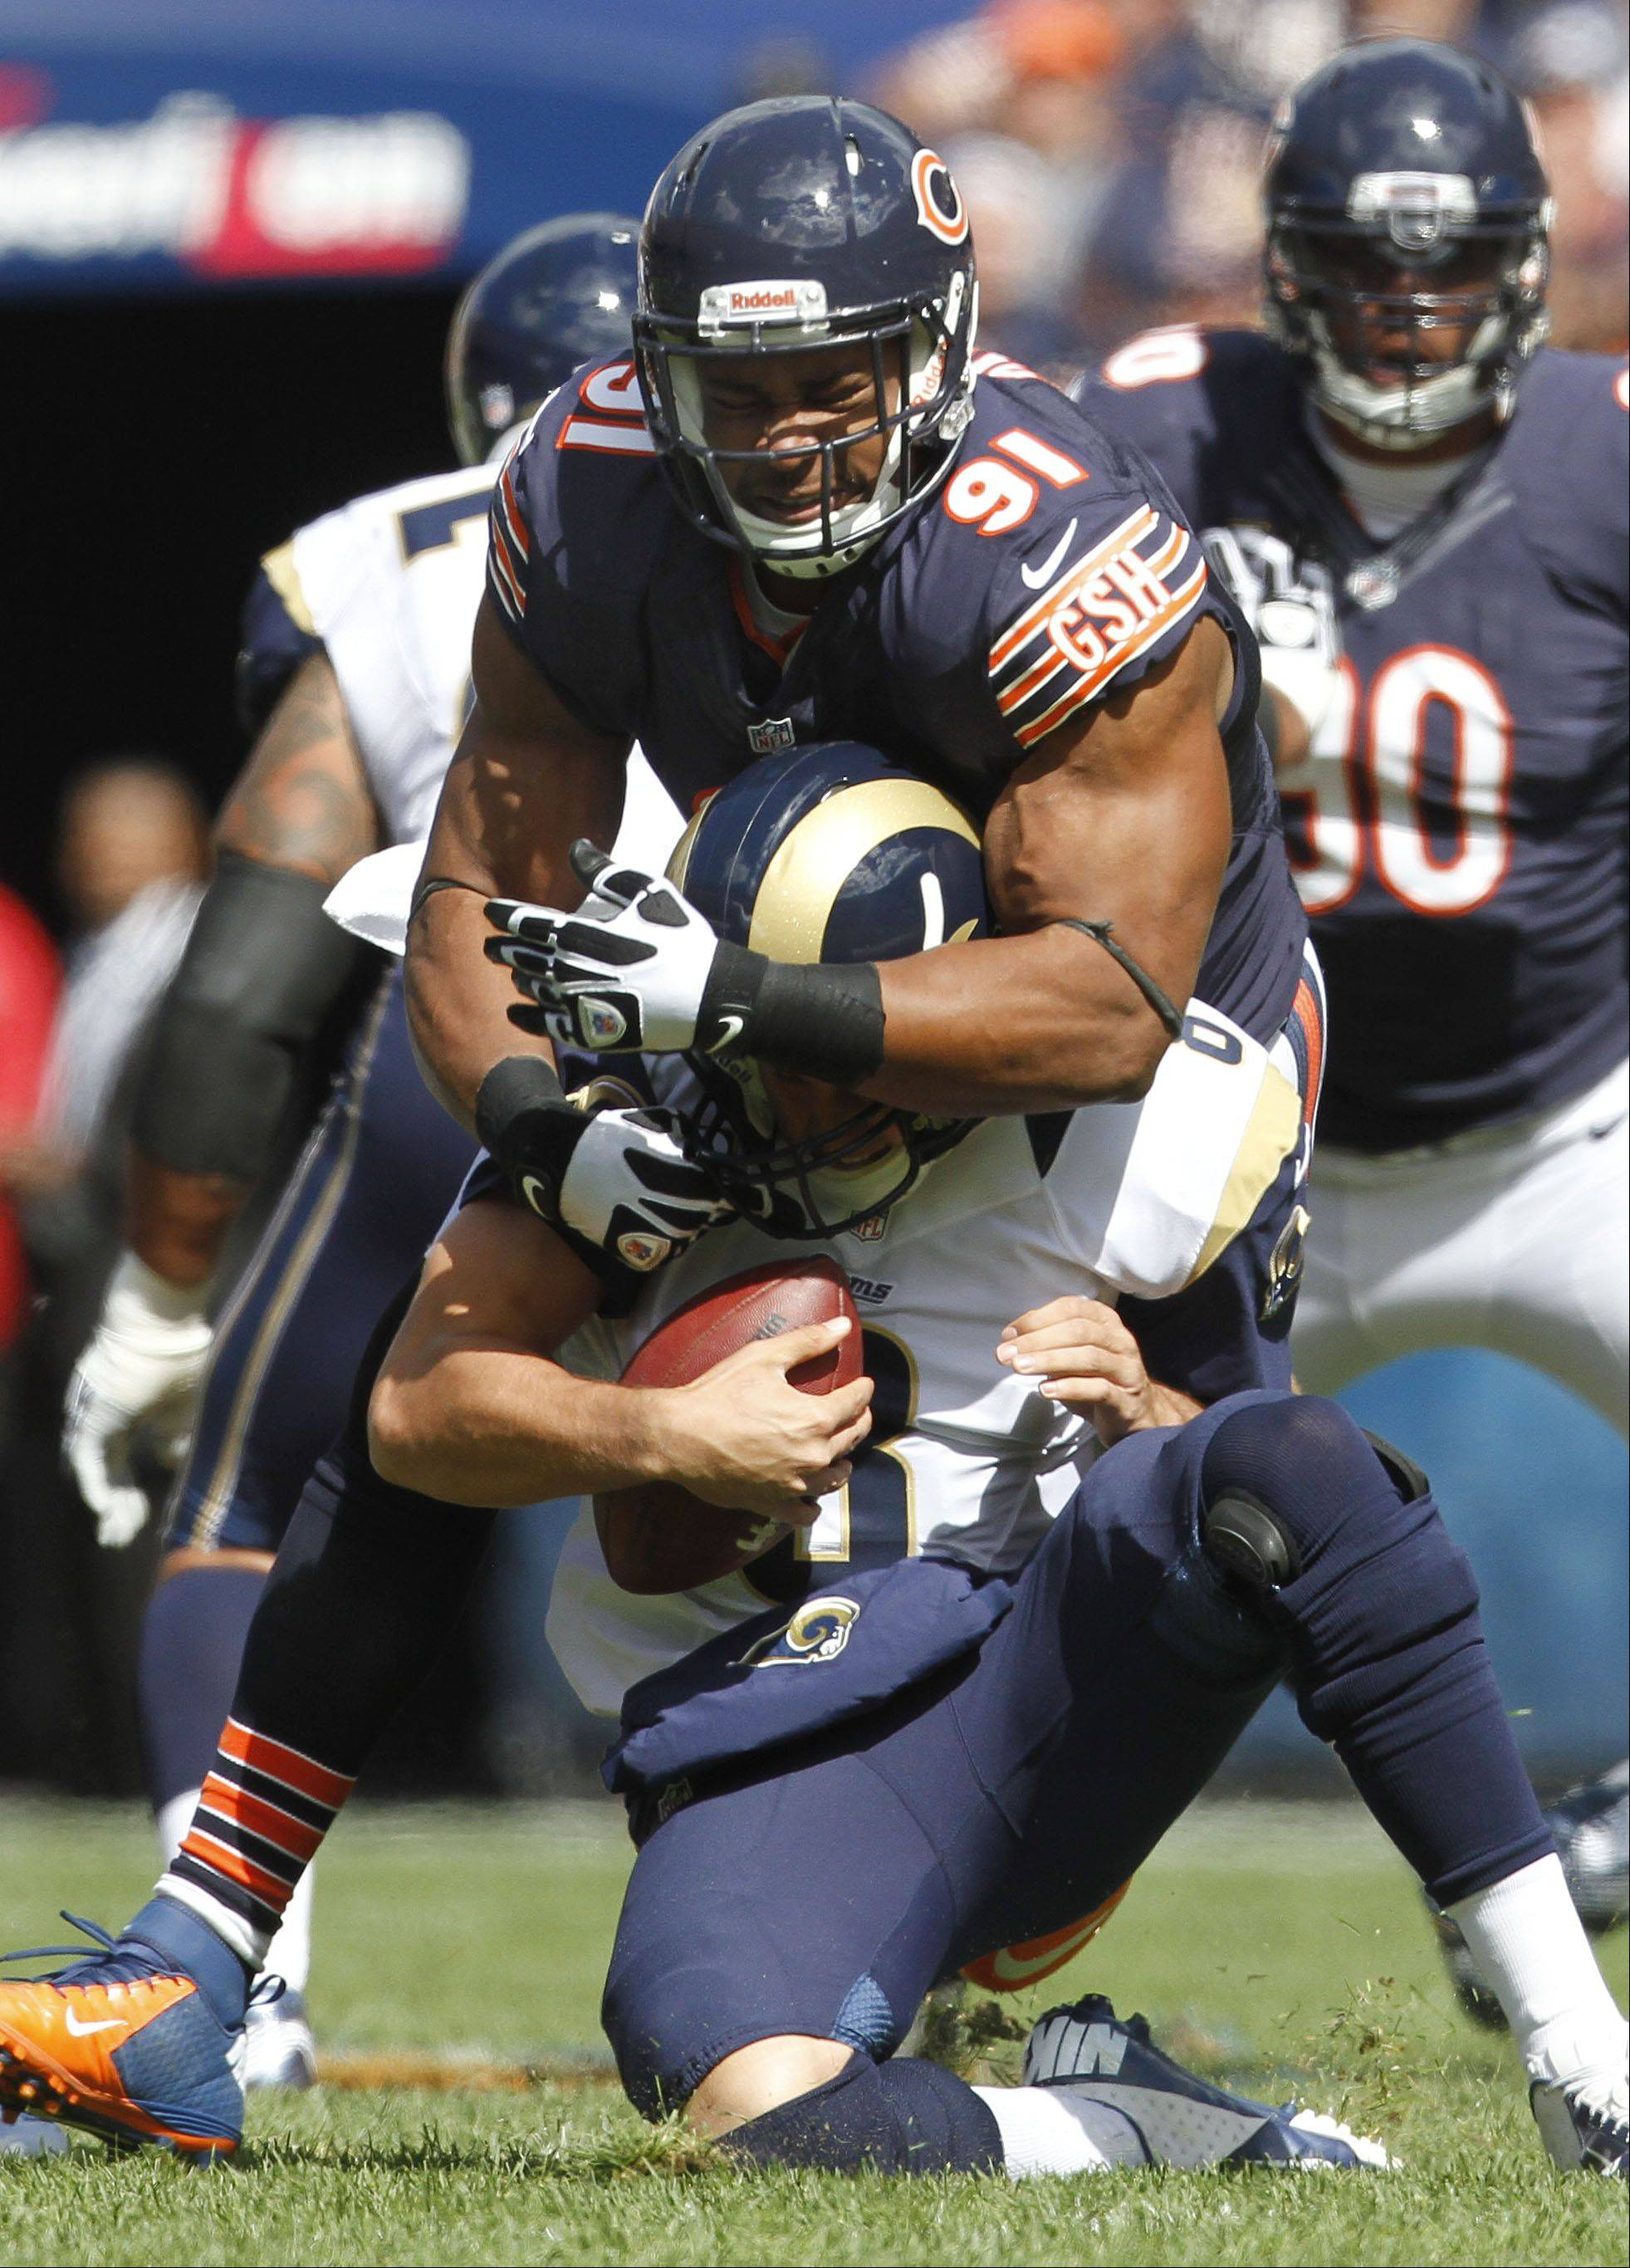 Bears defensive tackle Amobi Okoye sacks Rams quarterback Sam Bradford last Sunday. Thirteen of the Bears' 14 sacks through the first three games have come from the defensive line.